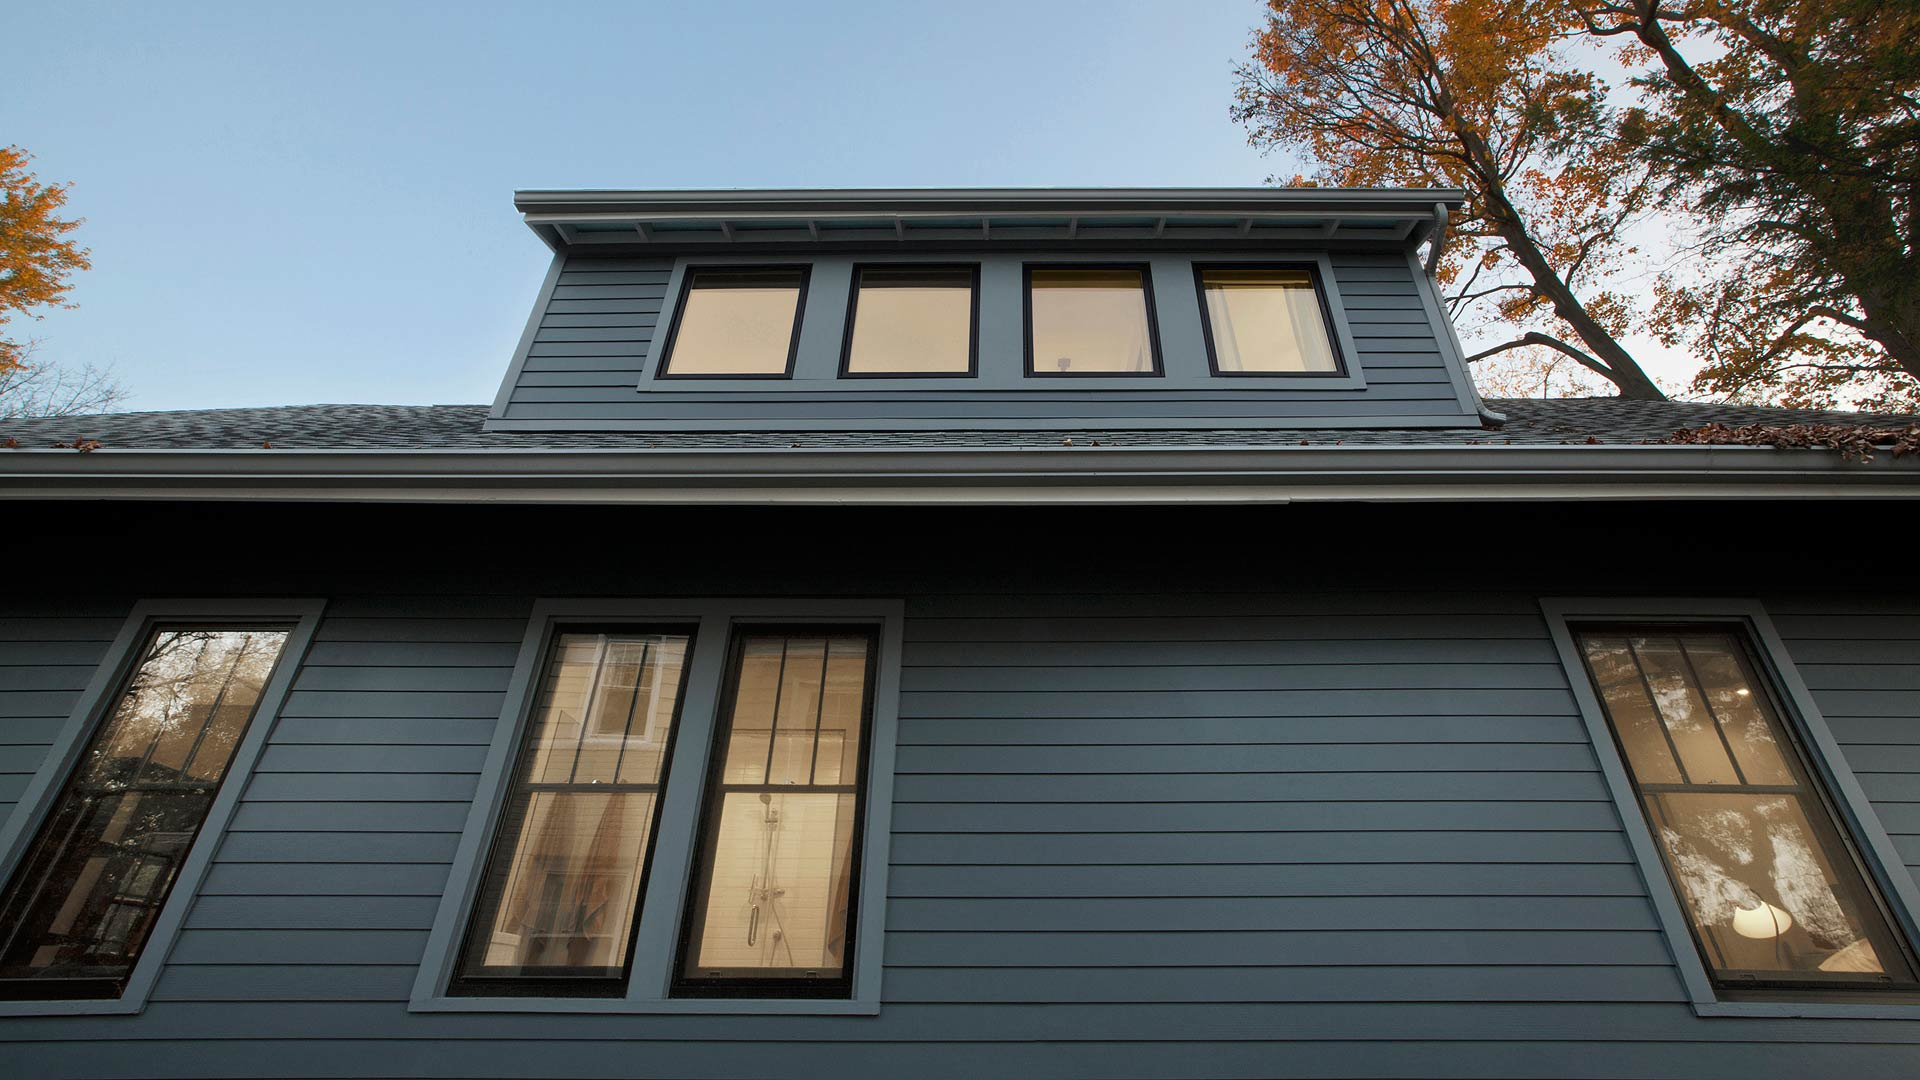 North side view looking up features the shed dormer, fiber-cement lap siding and trims with medium-gray exterior paint and exposed rafter tail Craftsman detailing in this newly reconstructed Broad Ripple Modern Craftsman Dwelling on Carrollton Avenue - Indianapolis, Indiana